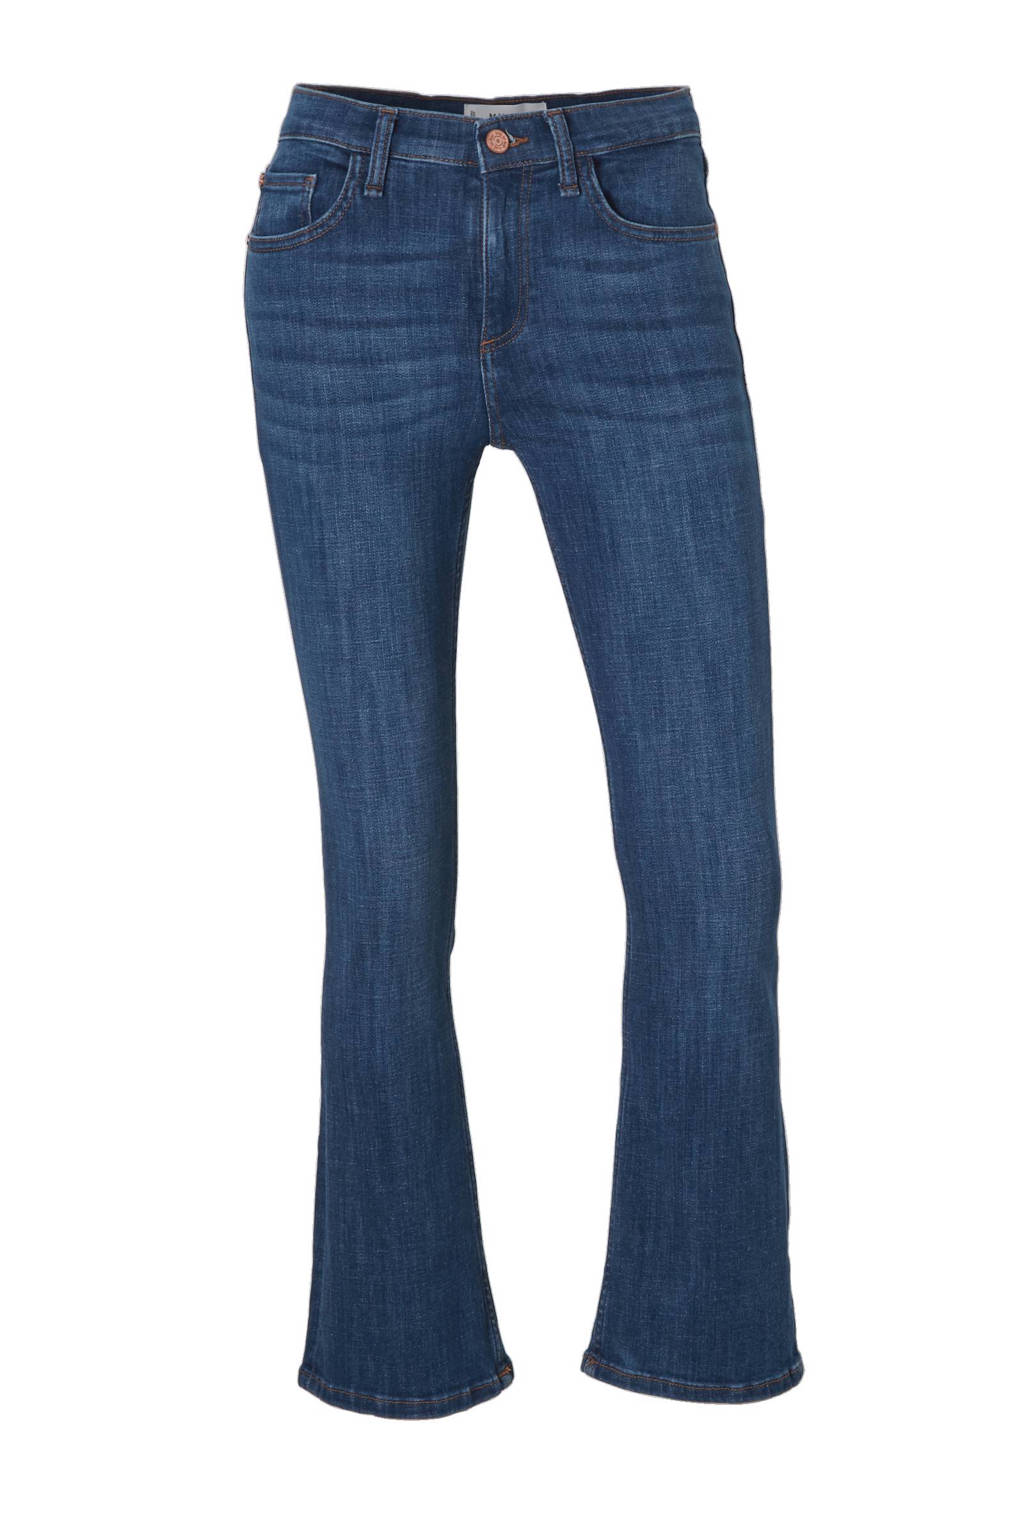 Mango cropped flared fit jeans, Denimblauw